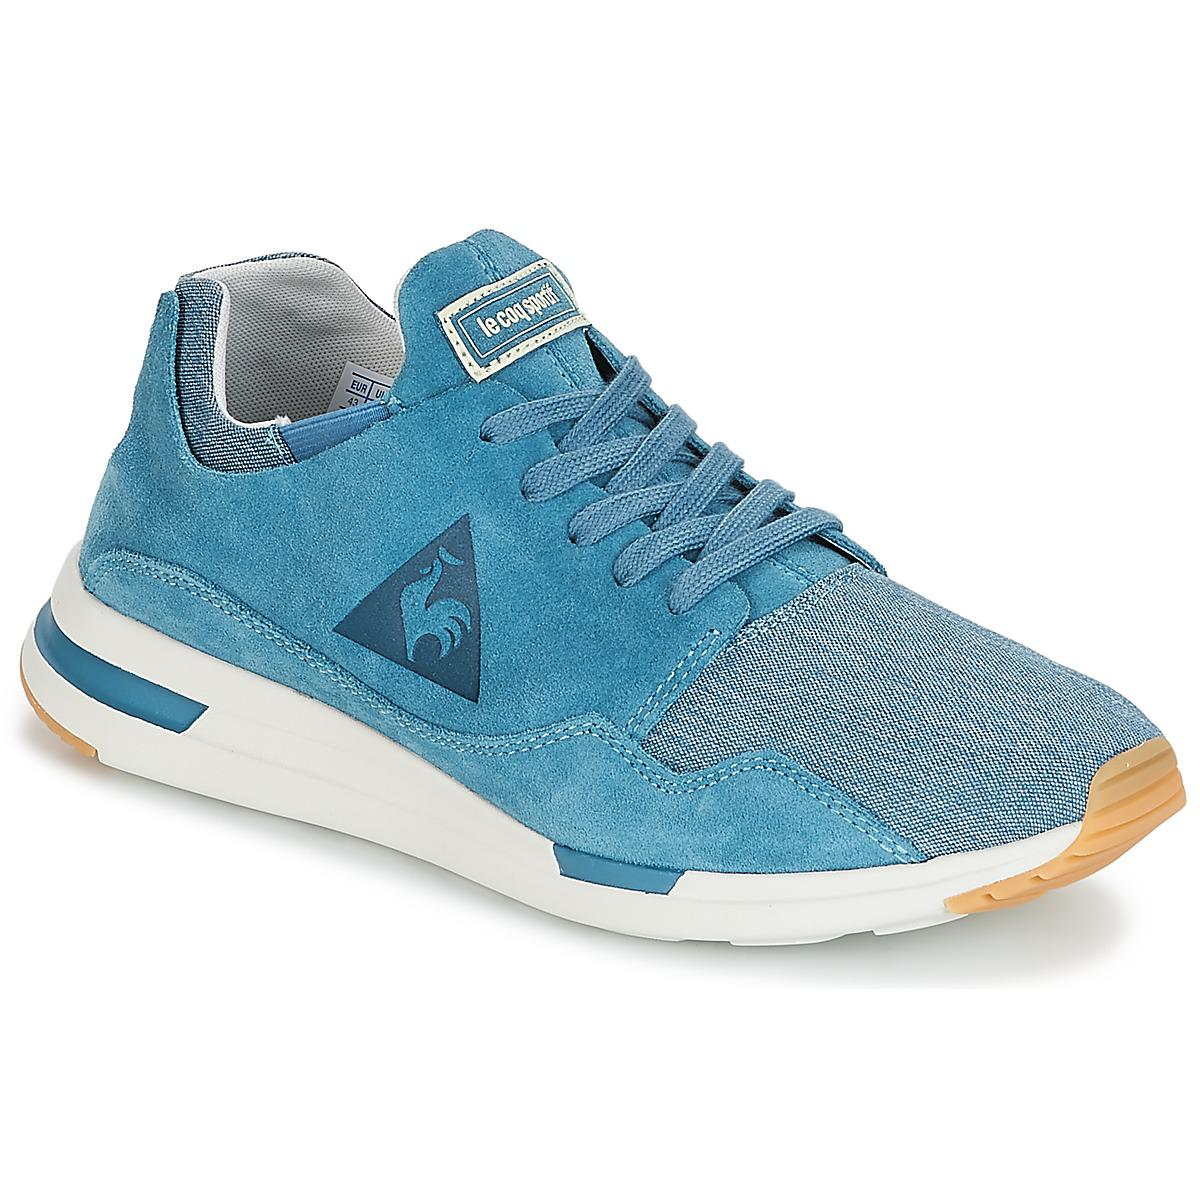 d3c0ef4153eb Le Coq Sportif Lcs R Pure Summer Craft Men s Shoes (trainers) In ...